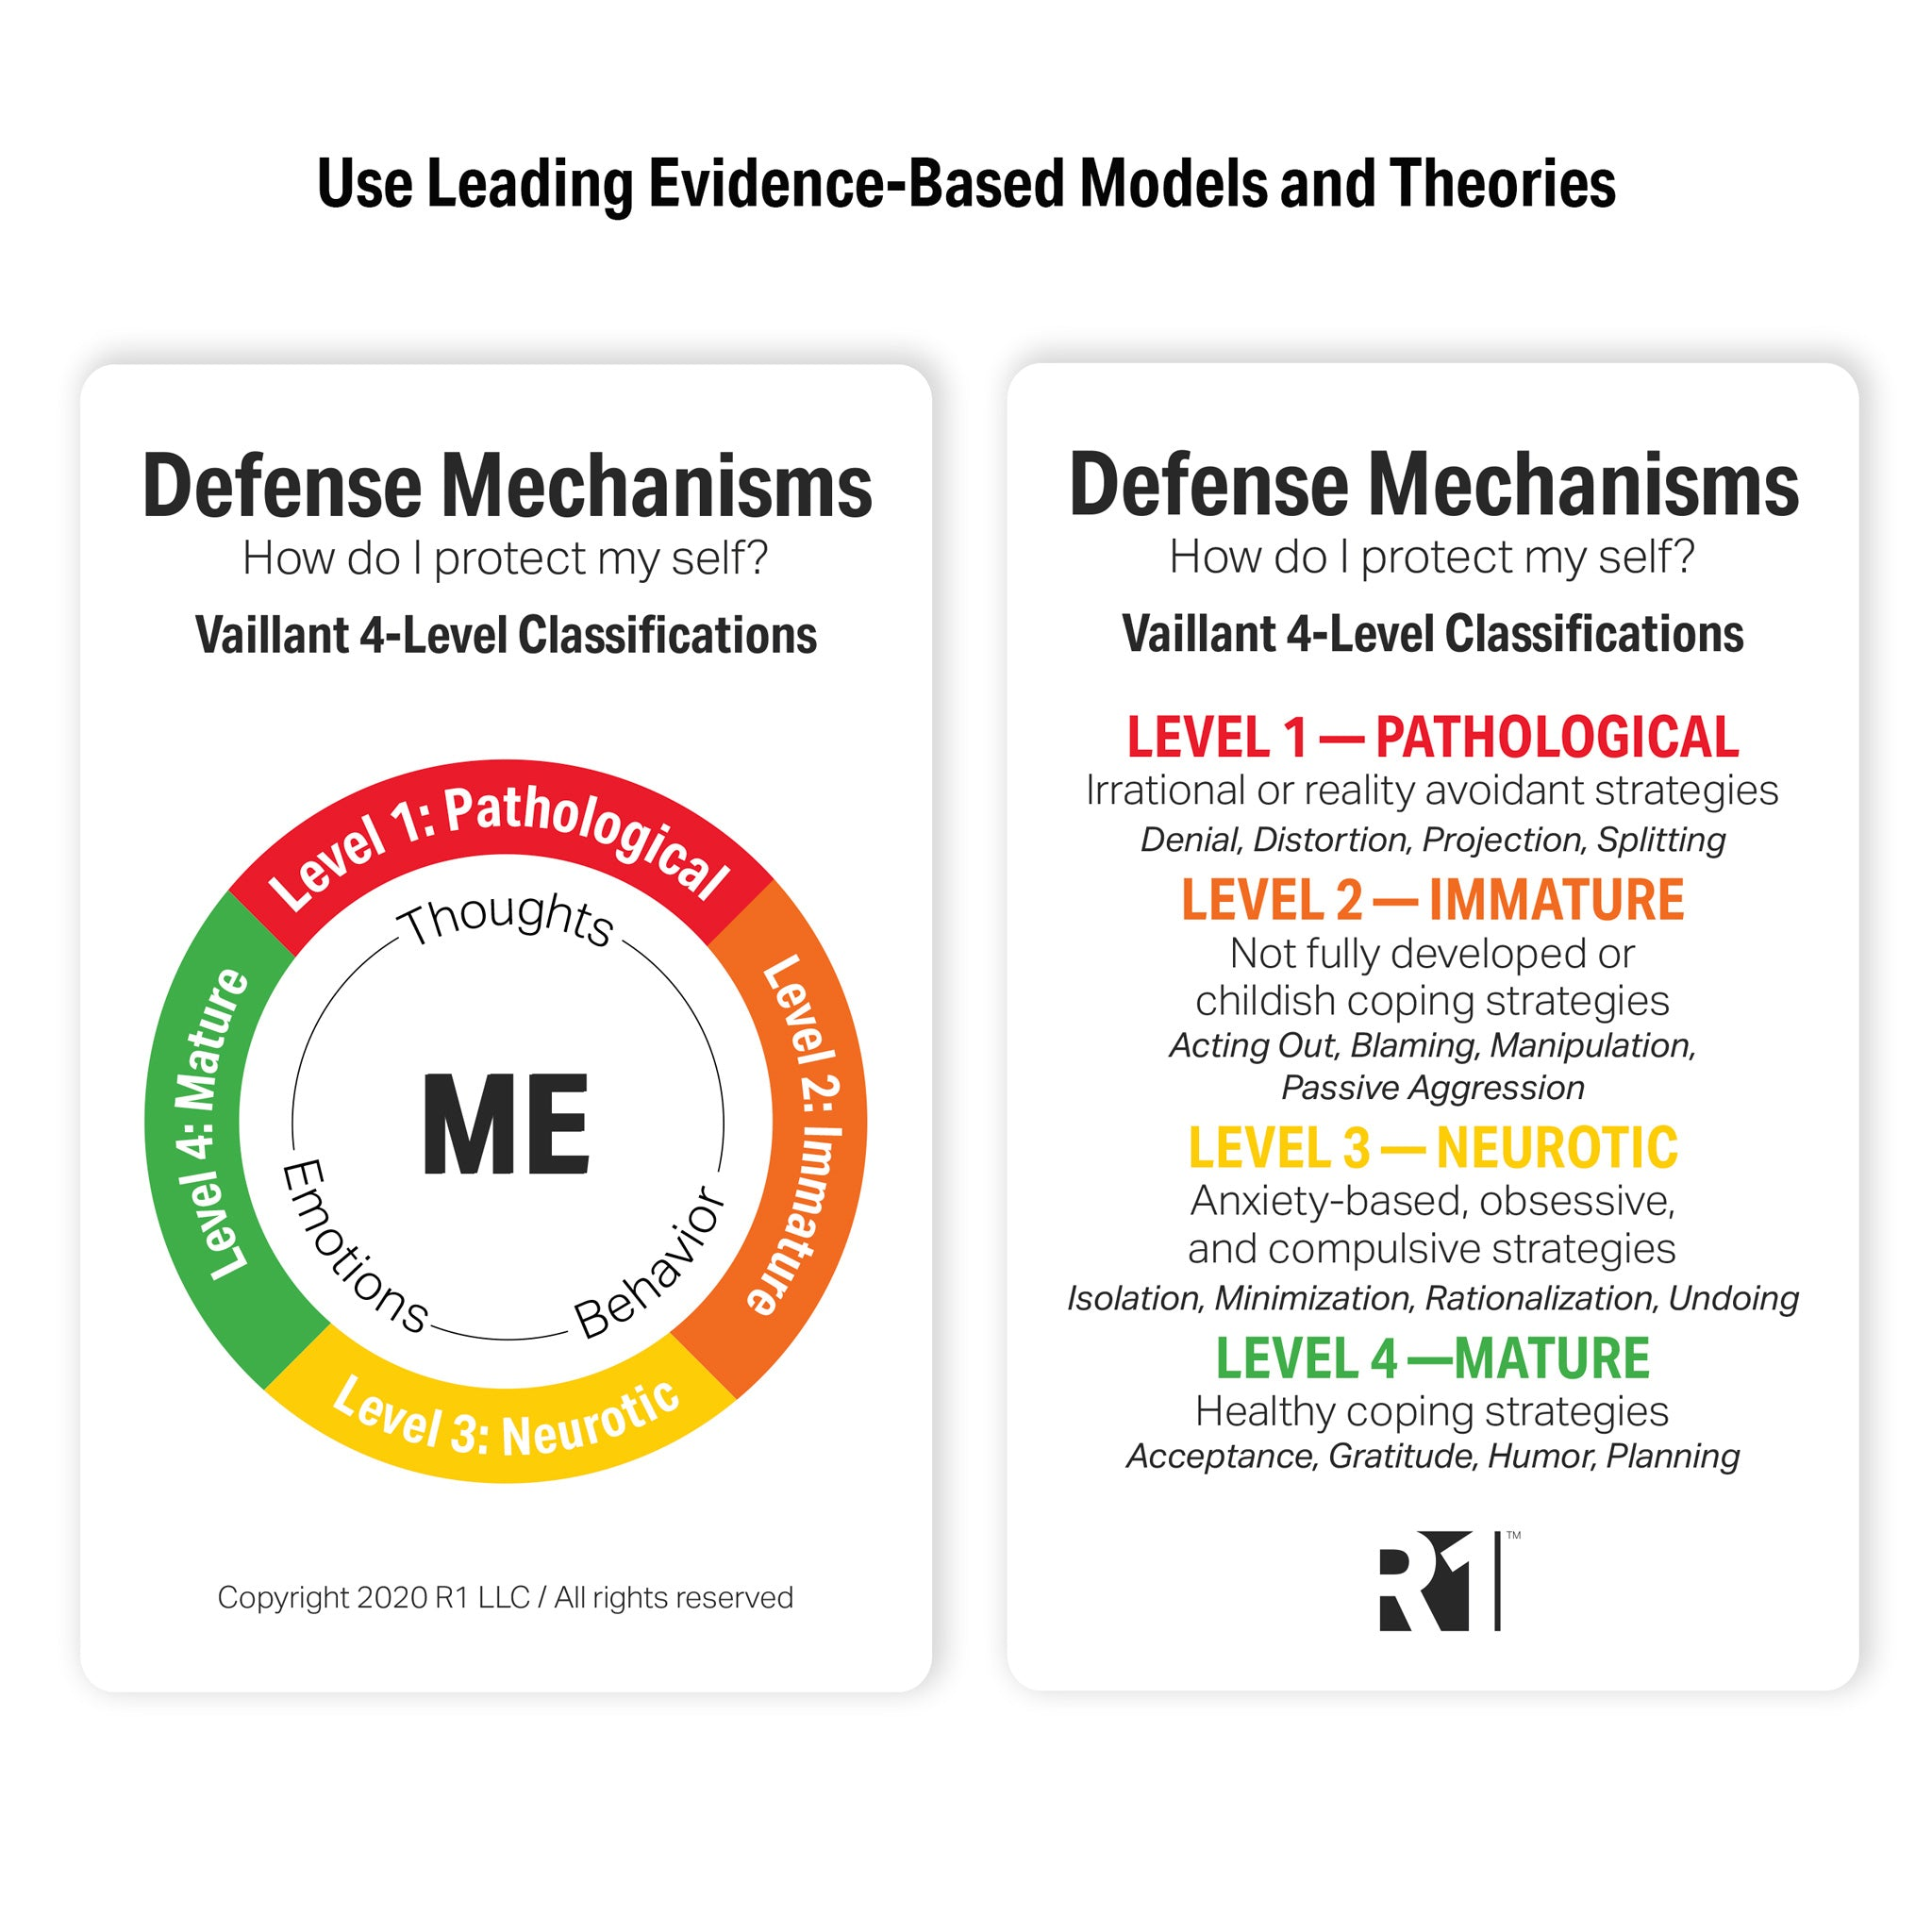 Defense Mechanisms Discovery Cards Facilitator Guide R1 Learning